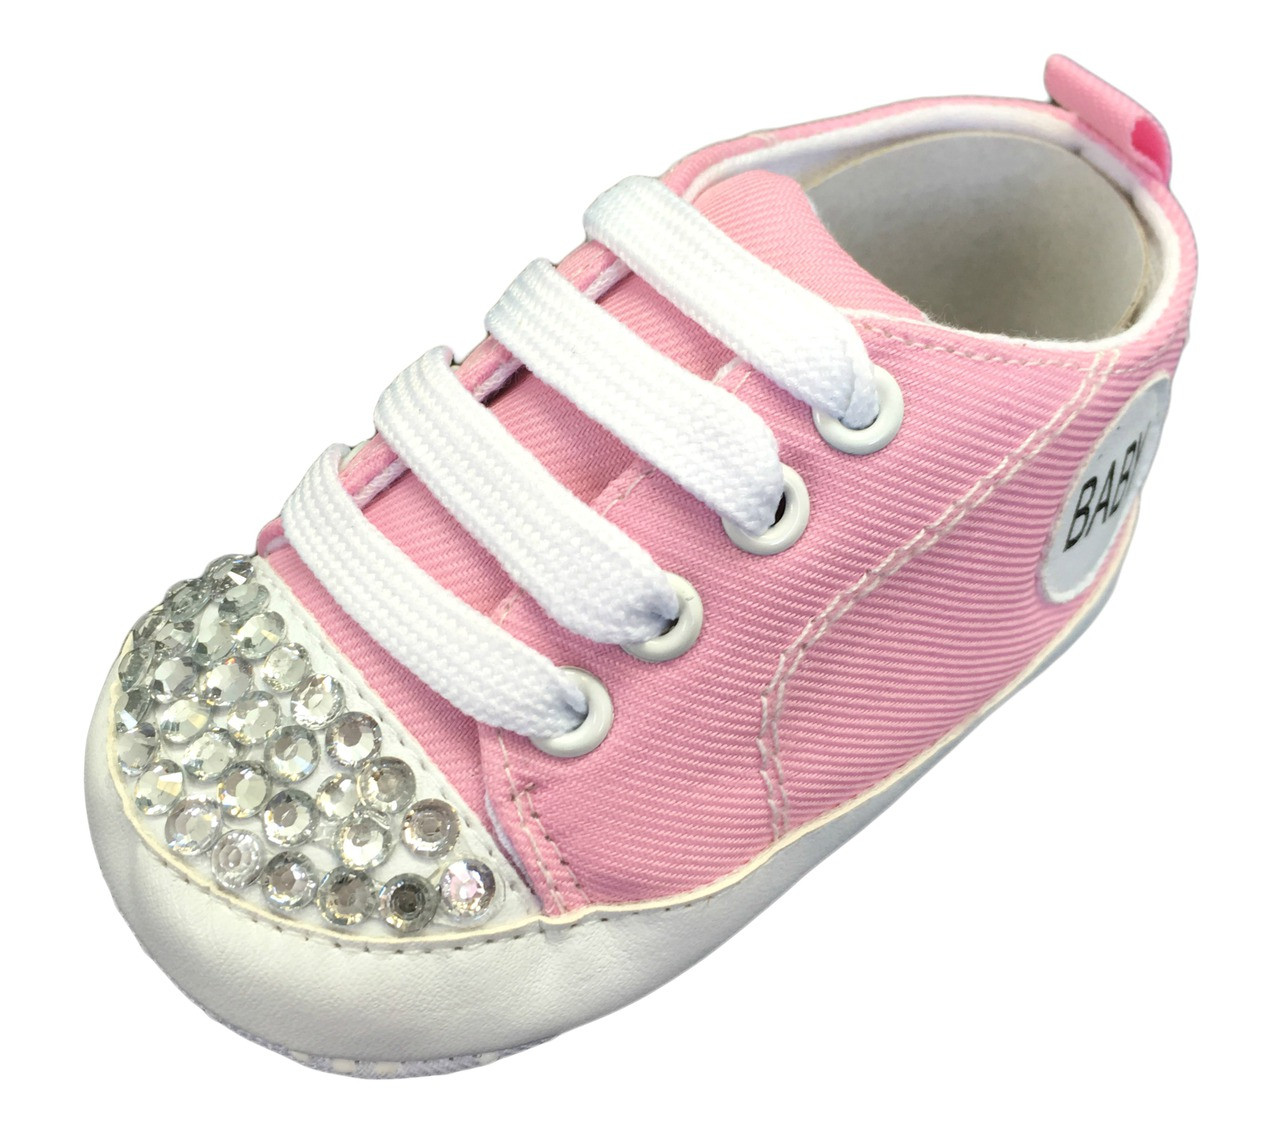 Infant Sneakers Light Pink Baby Sneakers With Rhinestones